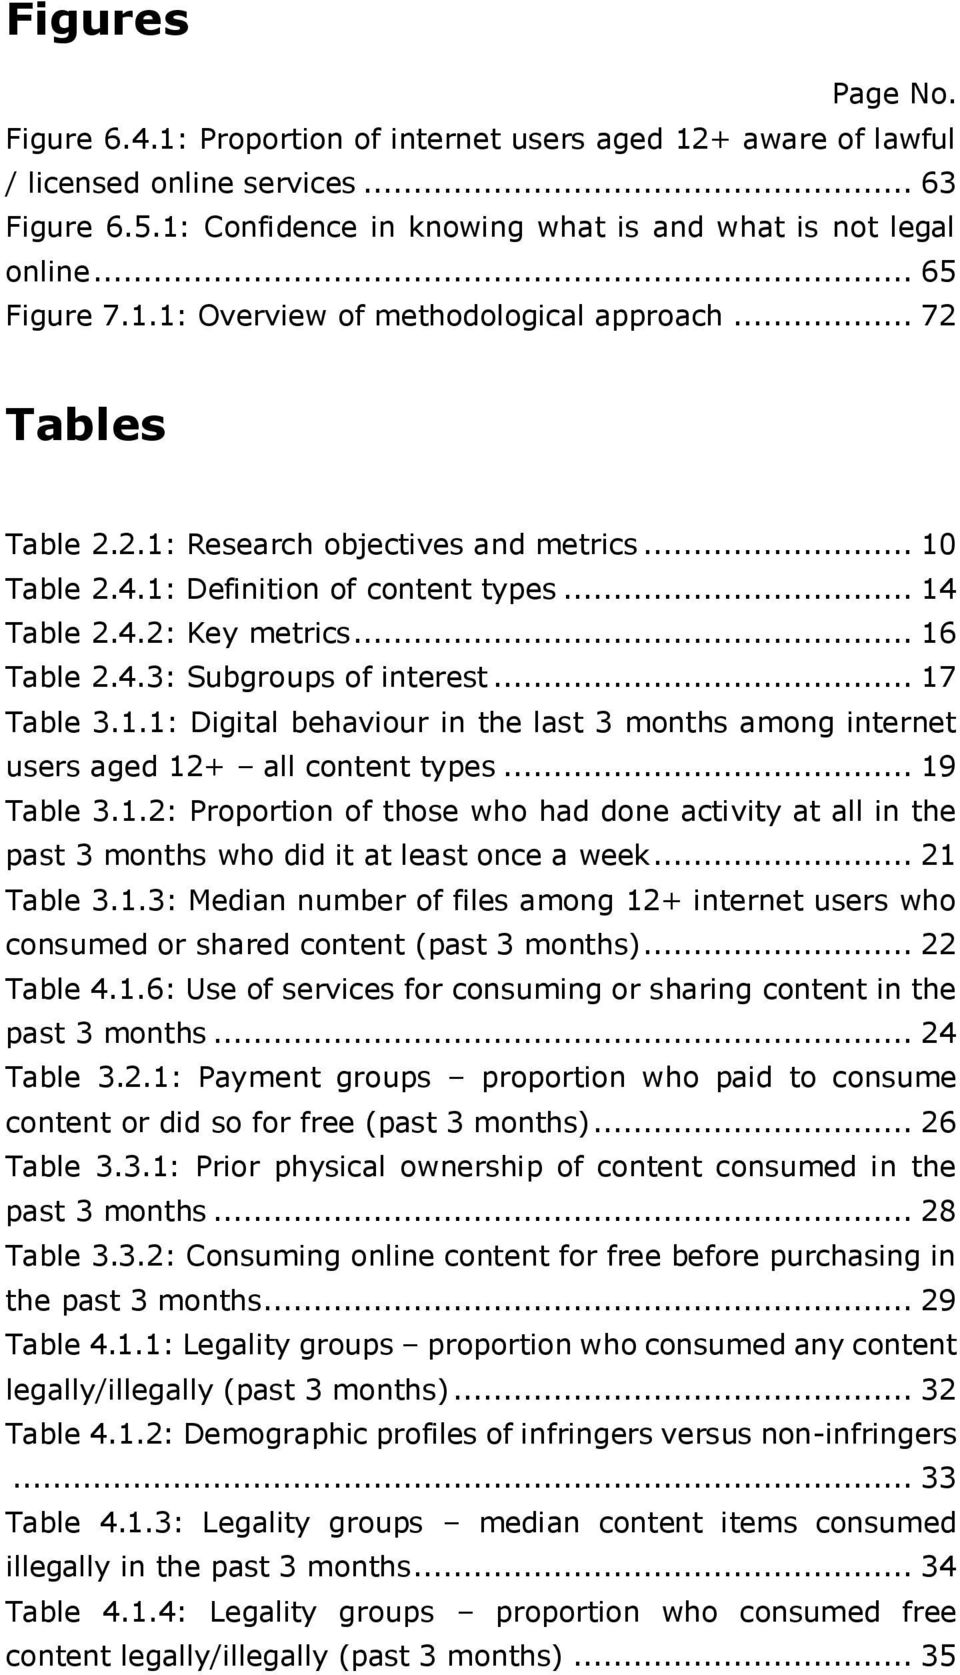 .. 16 Table 2.4.3: Subgroups of interest... 17 Table 3.1.1: Digital behaviour in the last 3 months among internet users aged 12+ all content types... 19 Table 3.1.2: Proportion of those who had done activity at all in the past 3 months who did it at least once a week.